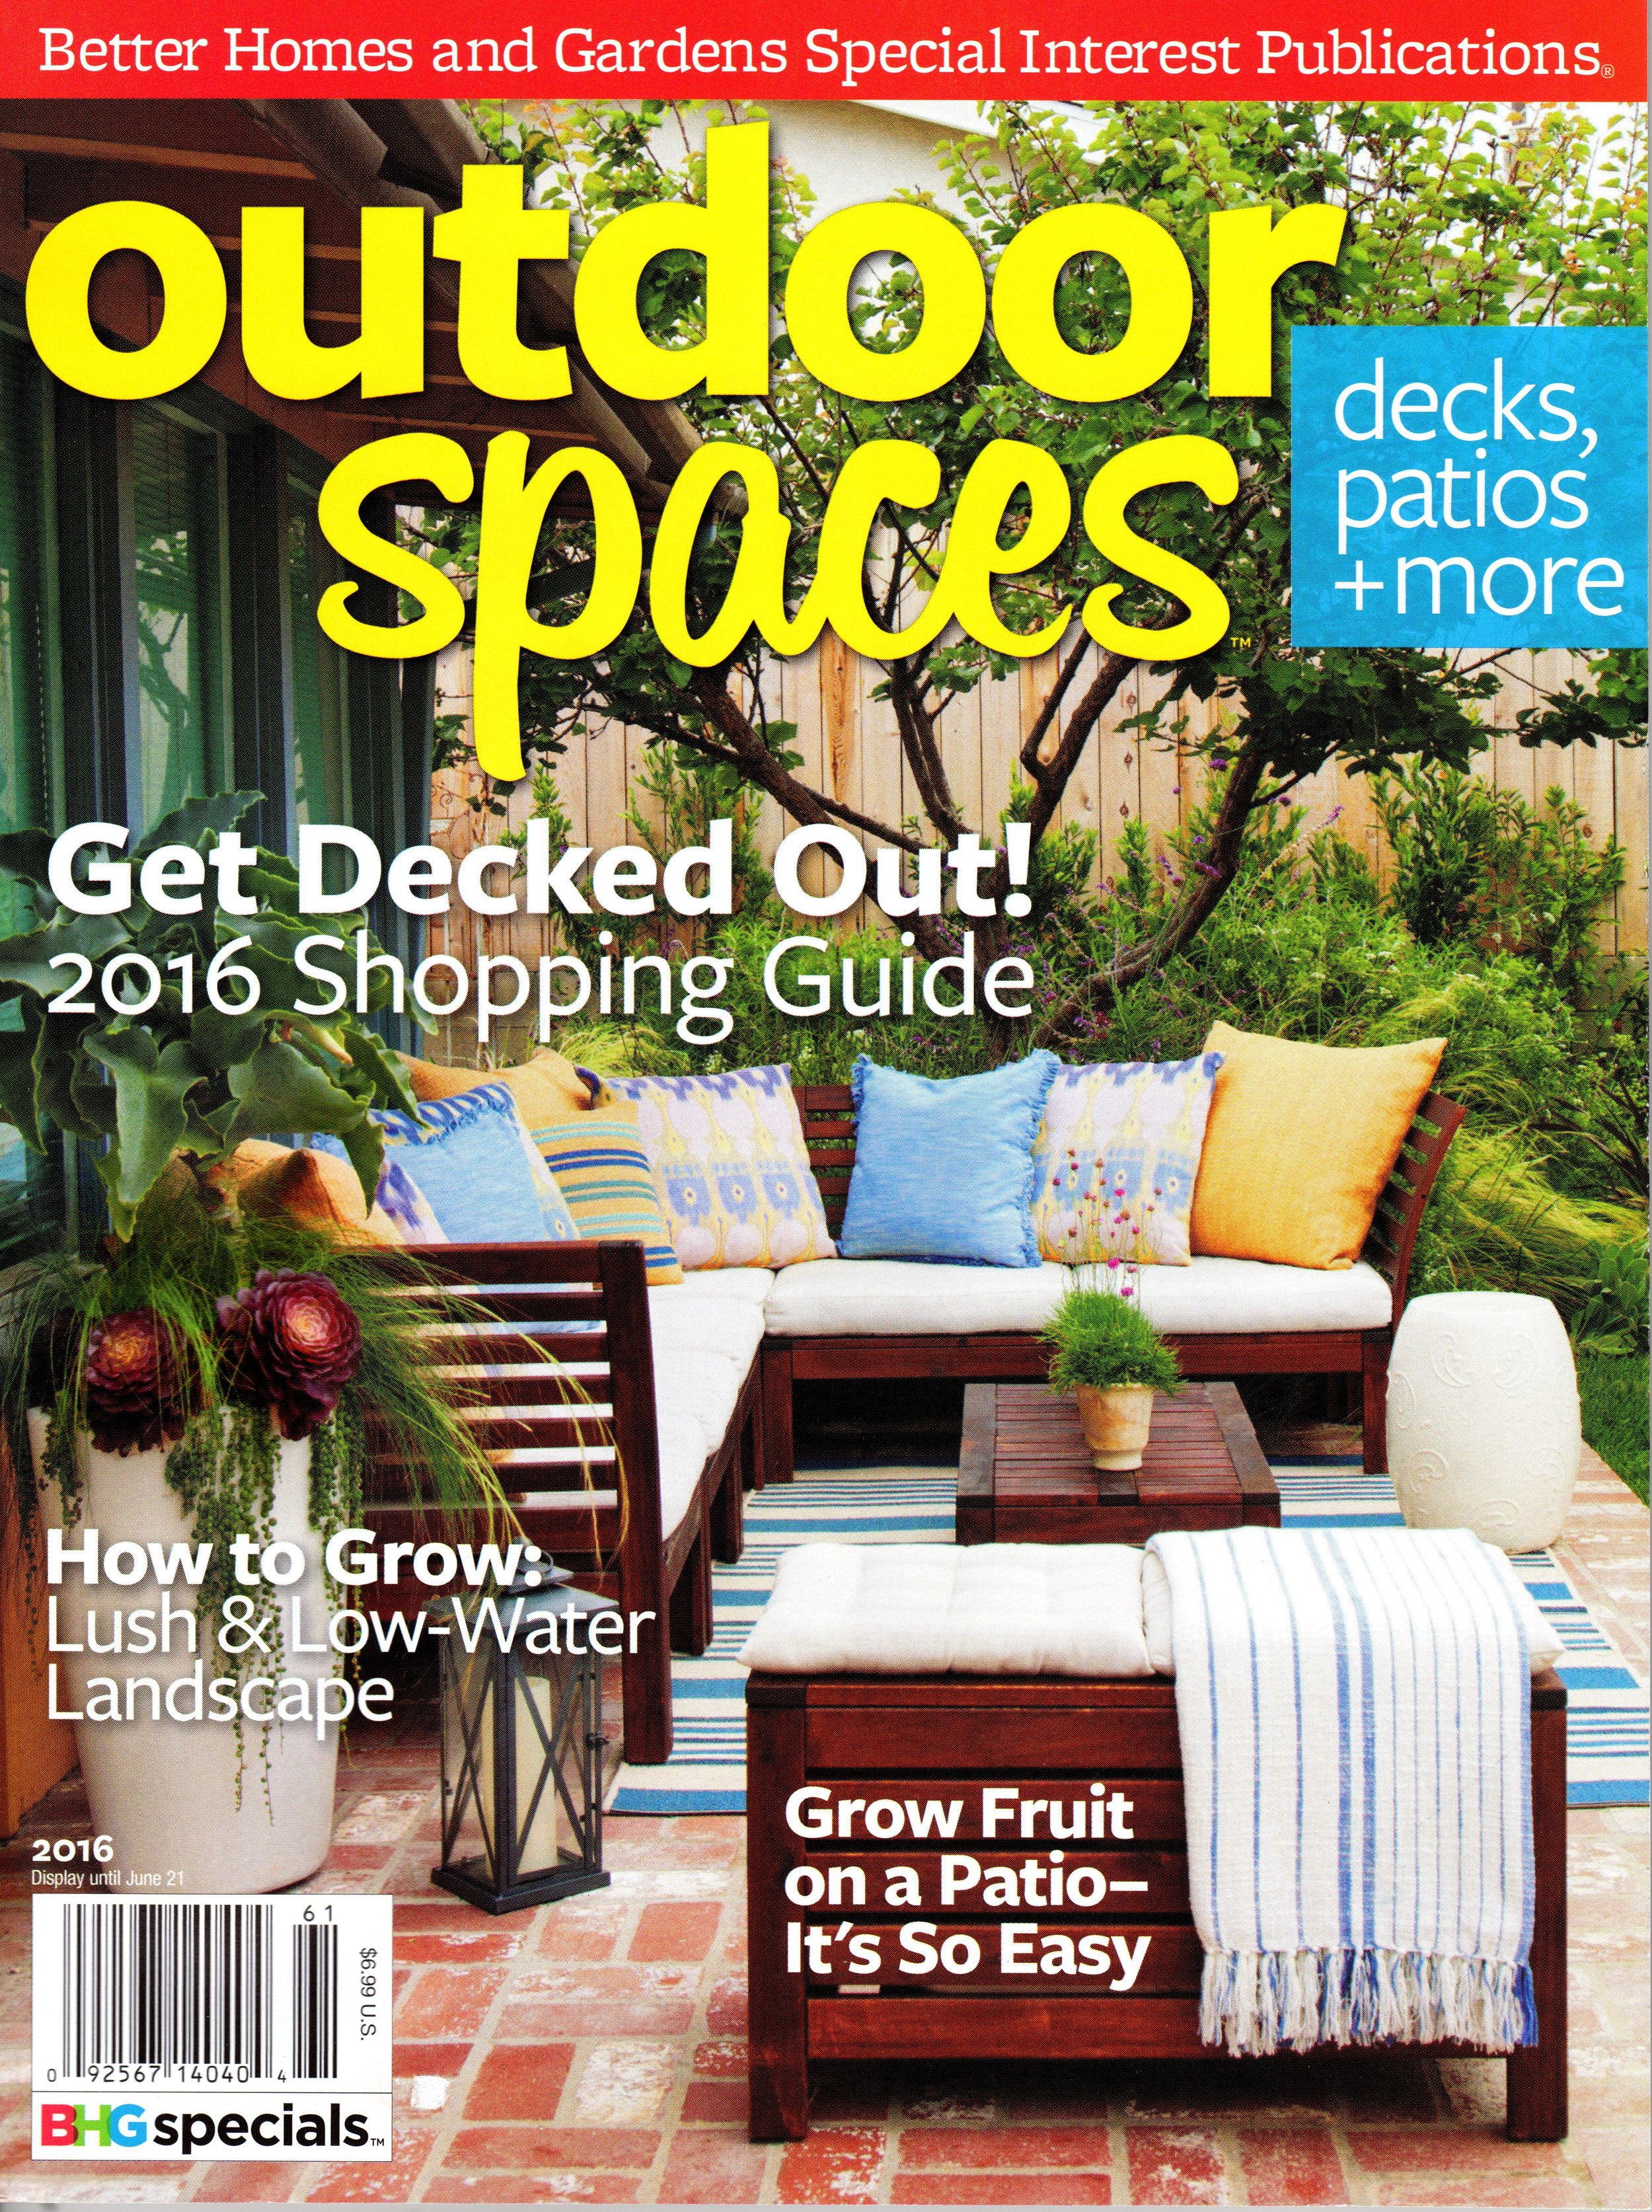 BETTER HOMES AND GARDENS' OUTDOOR SPACES MAGAZINE.. Link to publication imagery